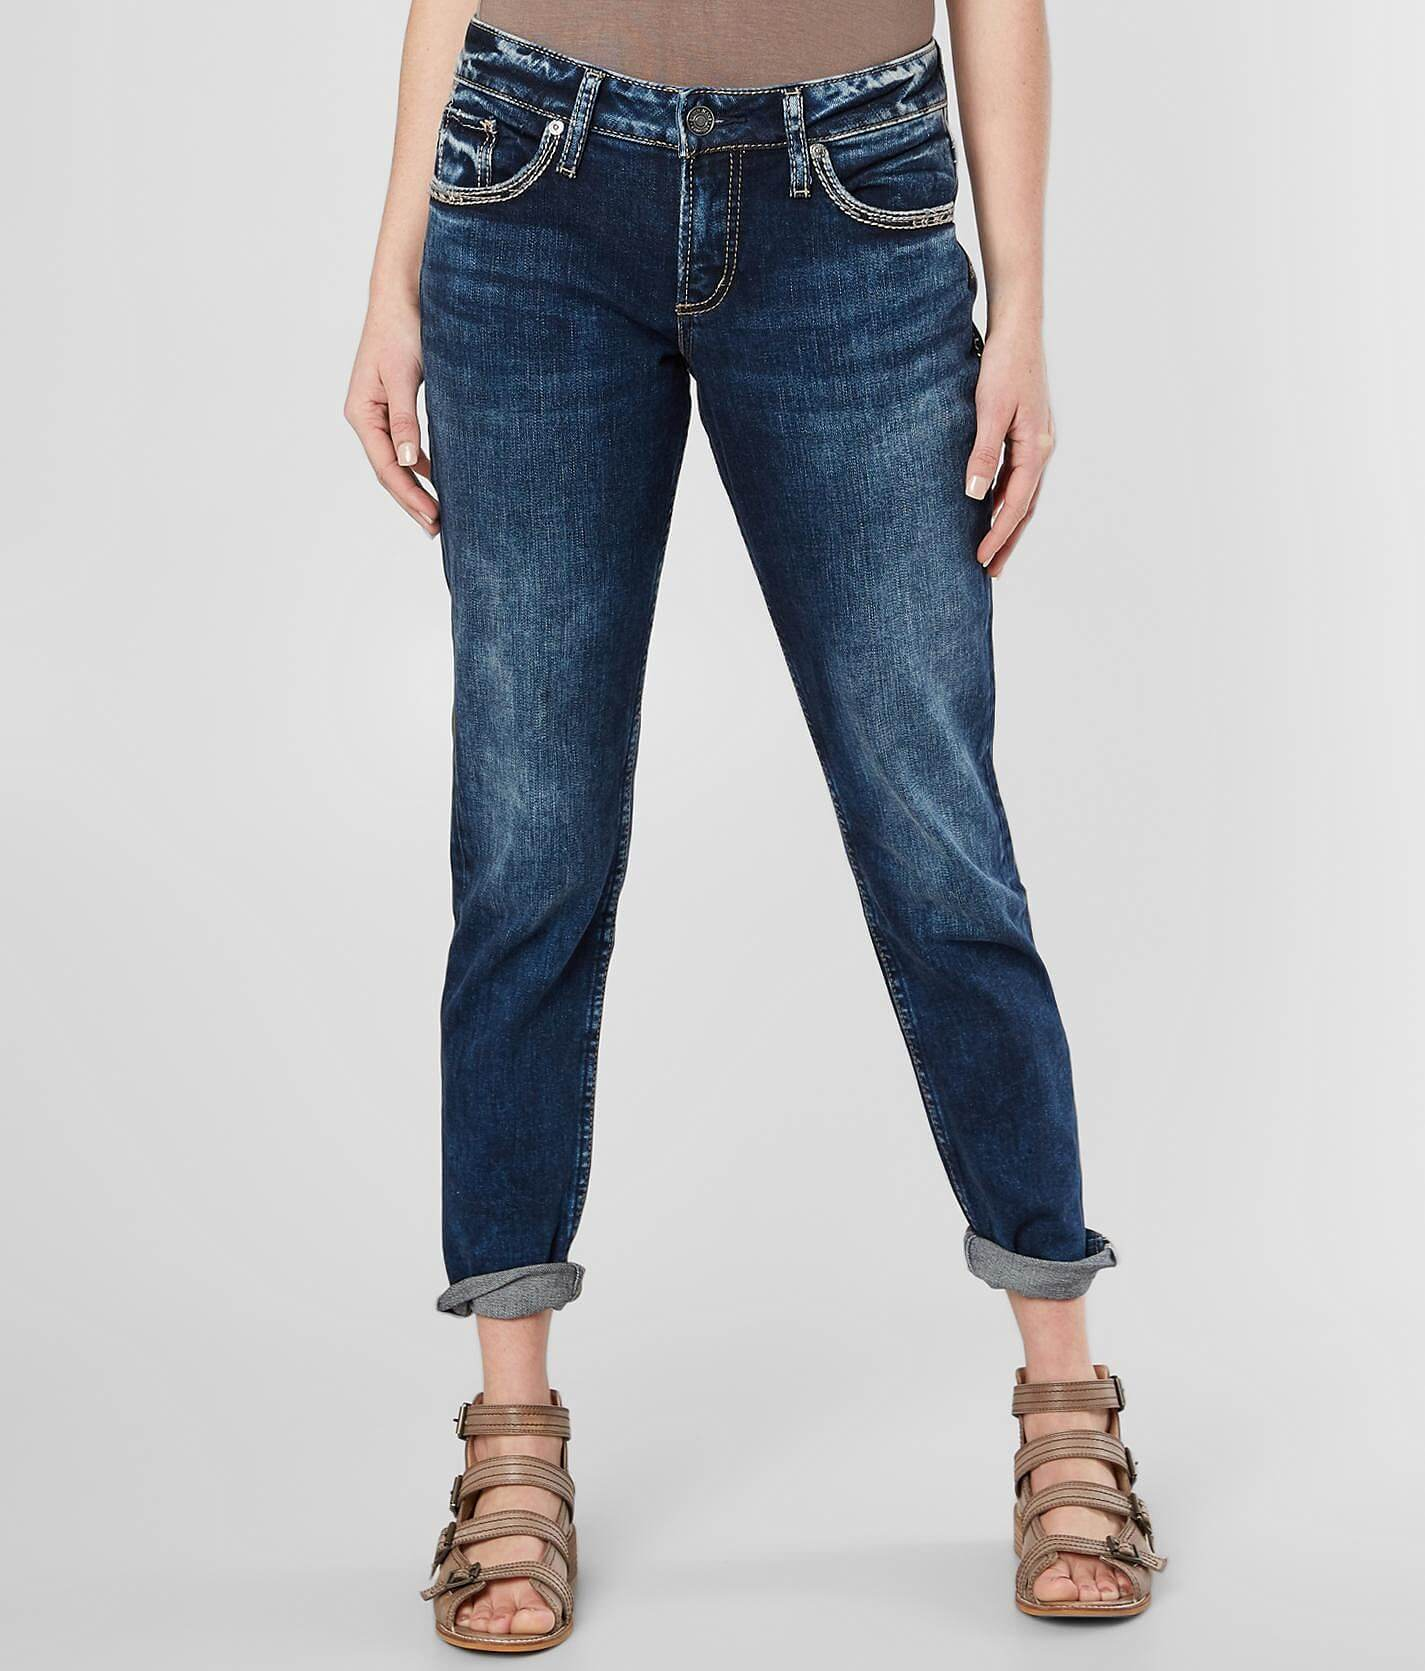 Silver Boyfriend Stretch Cuffed Jean